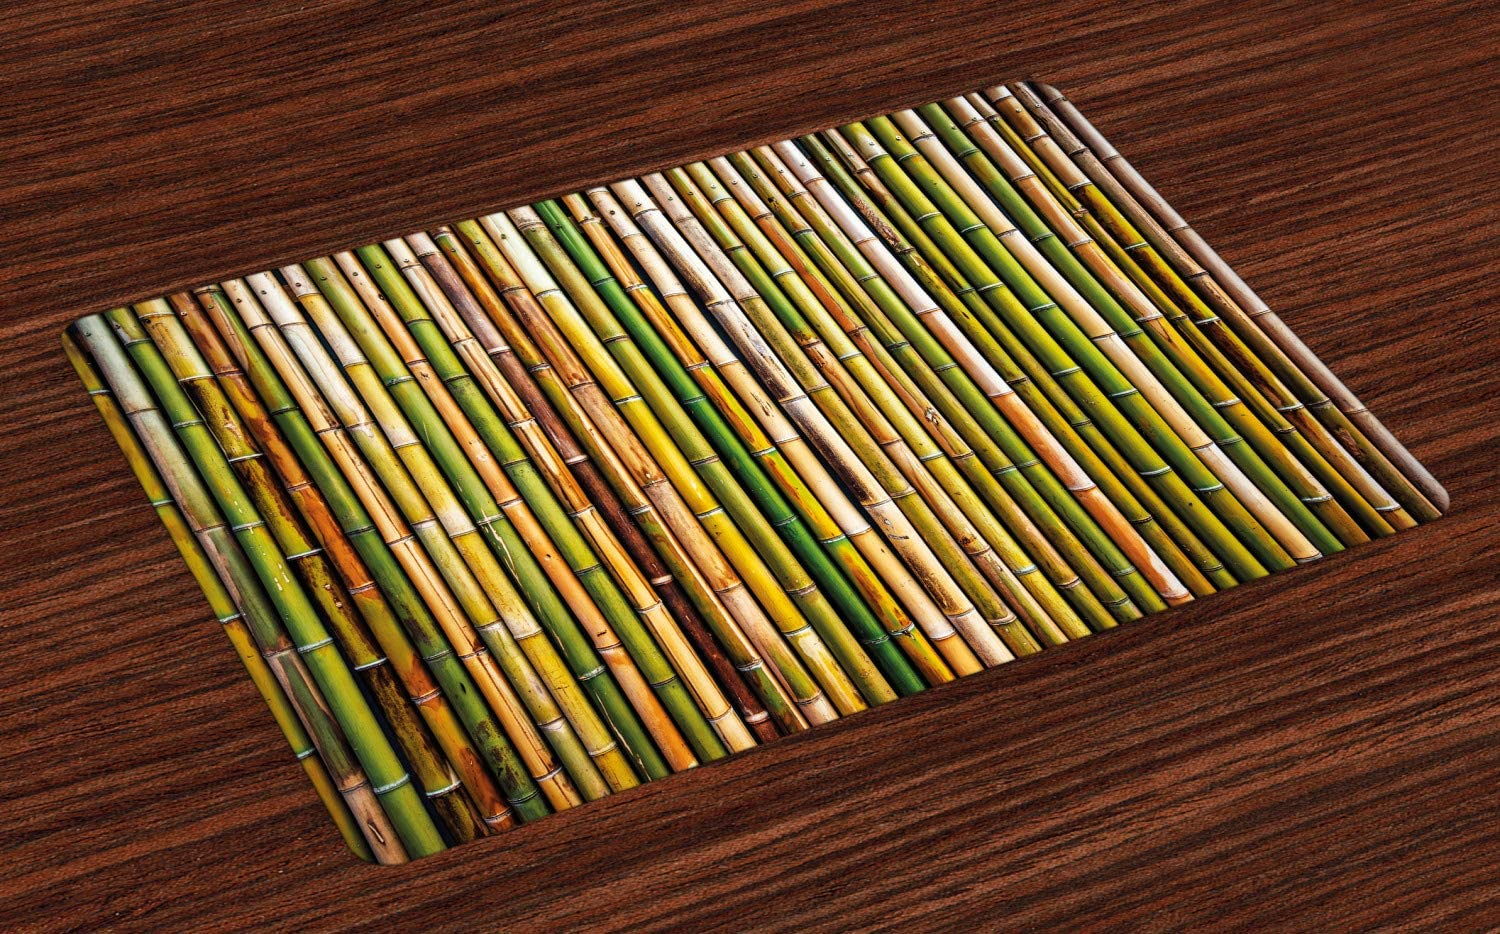 Lunarable Fence Place Mats Set of 4 Ranking TOP17 in Tightly Bamboo price a Sticks